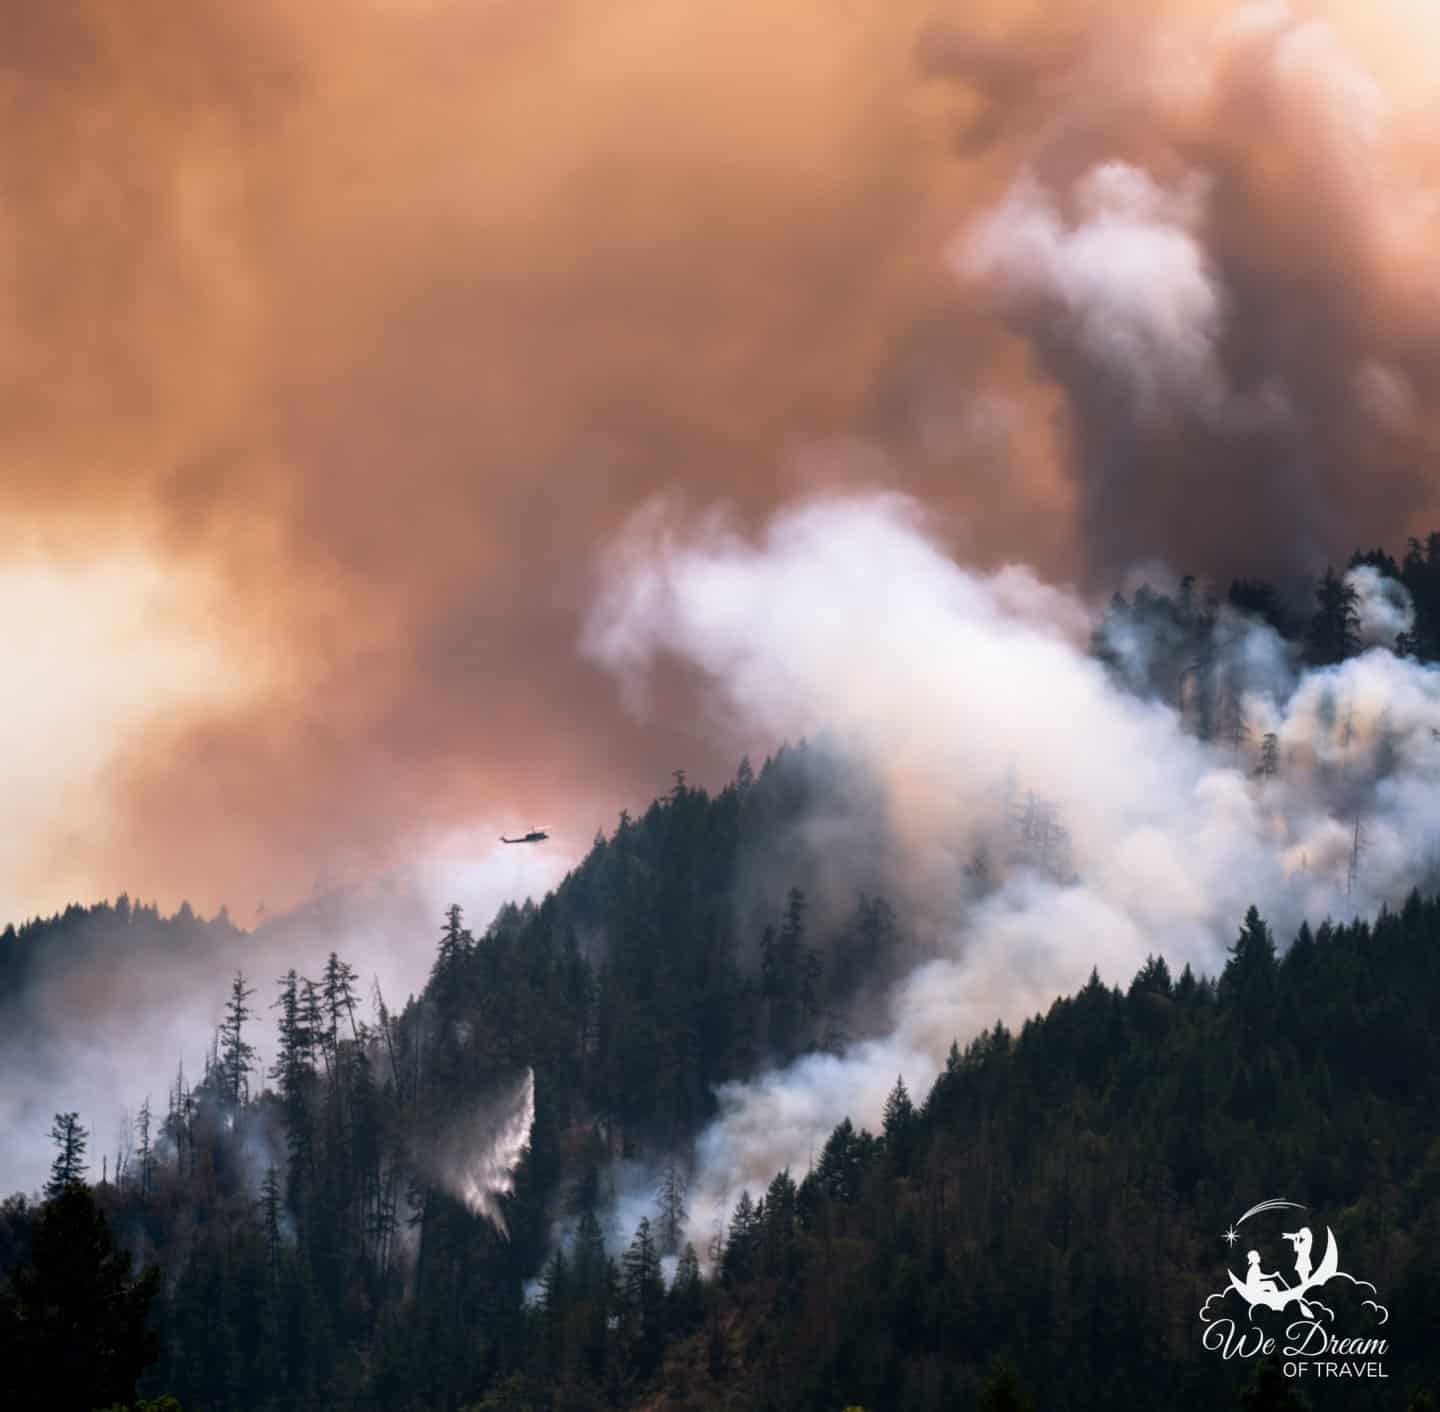 Fire crews drop water on a forest fire in Oregon.